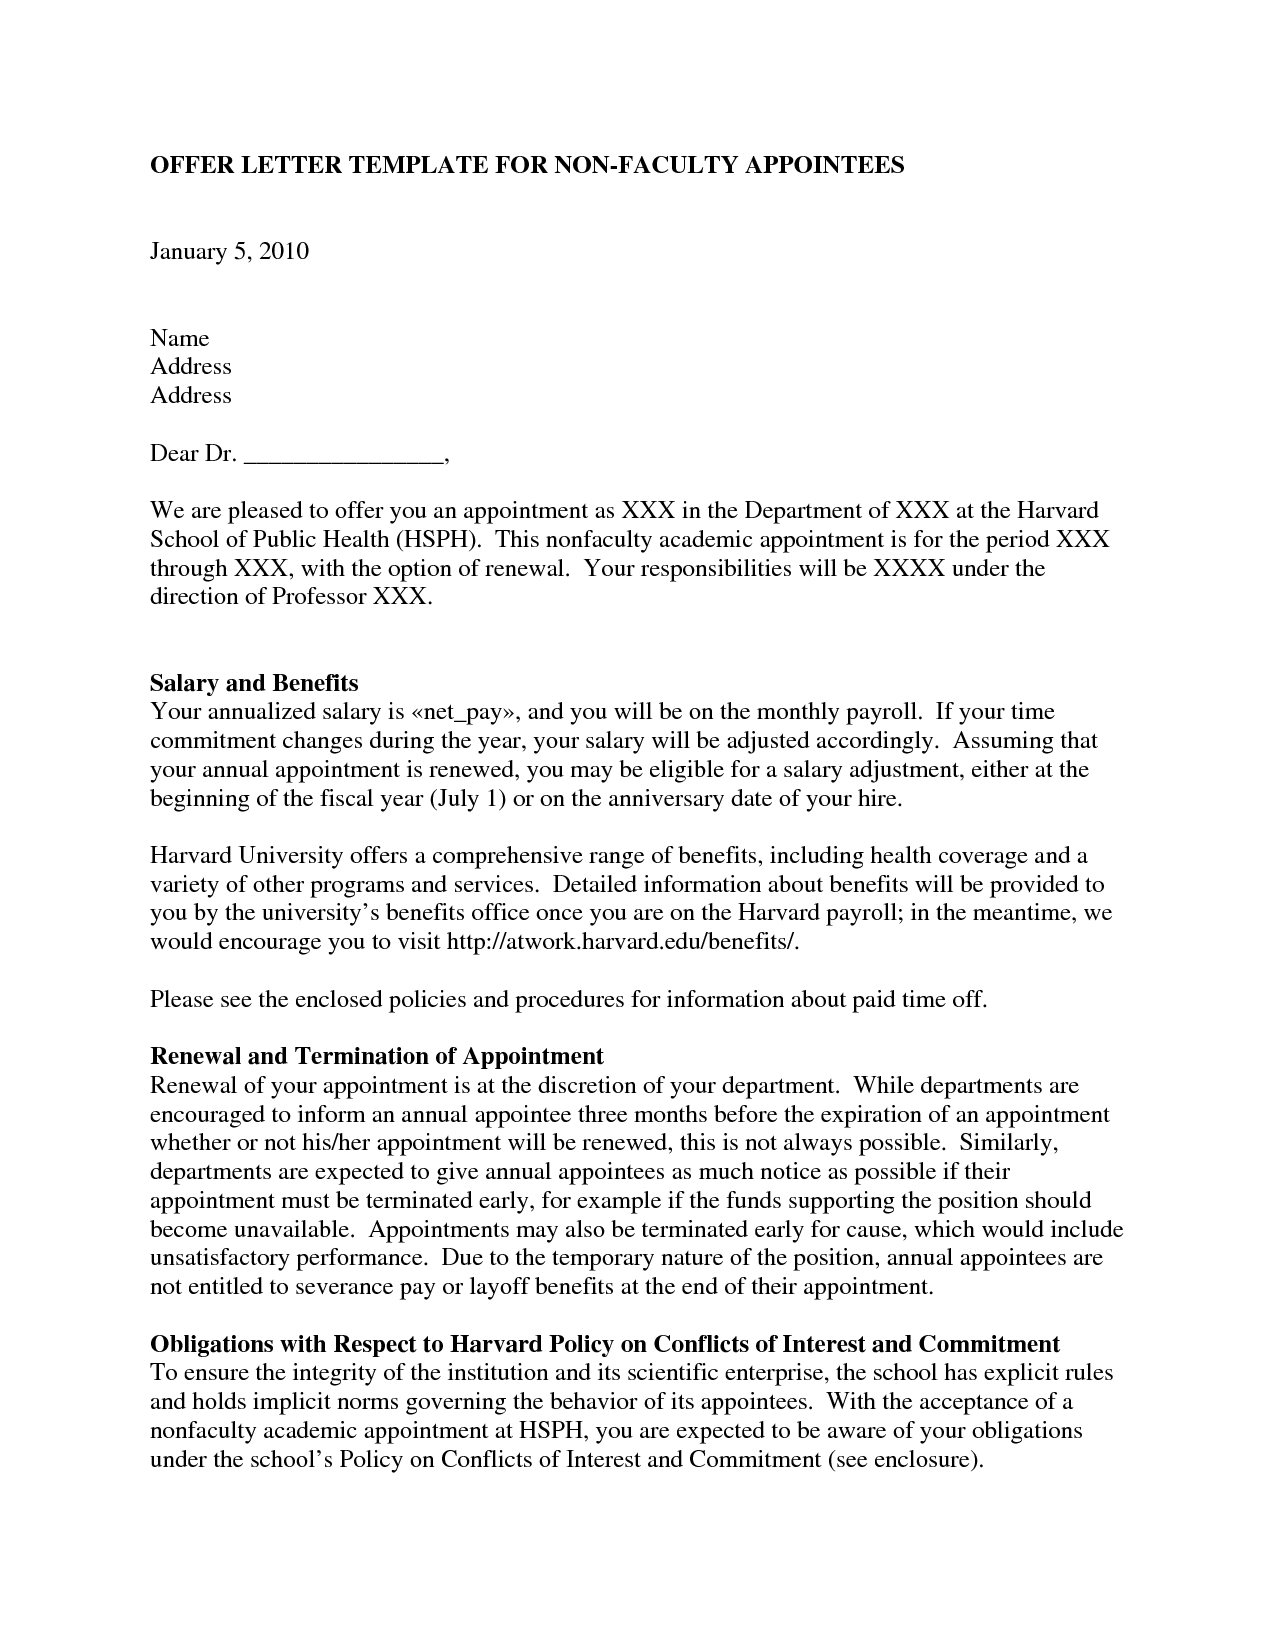 Harvard Resume Writing Harvard Acceptance Letter To Get An Admissions